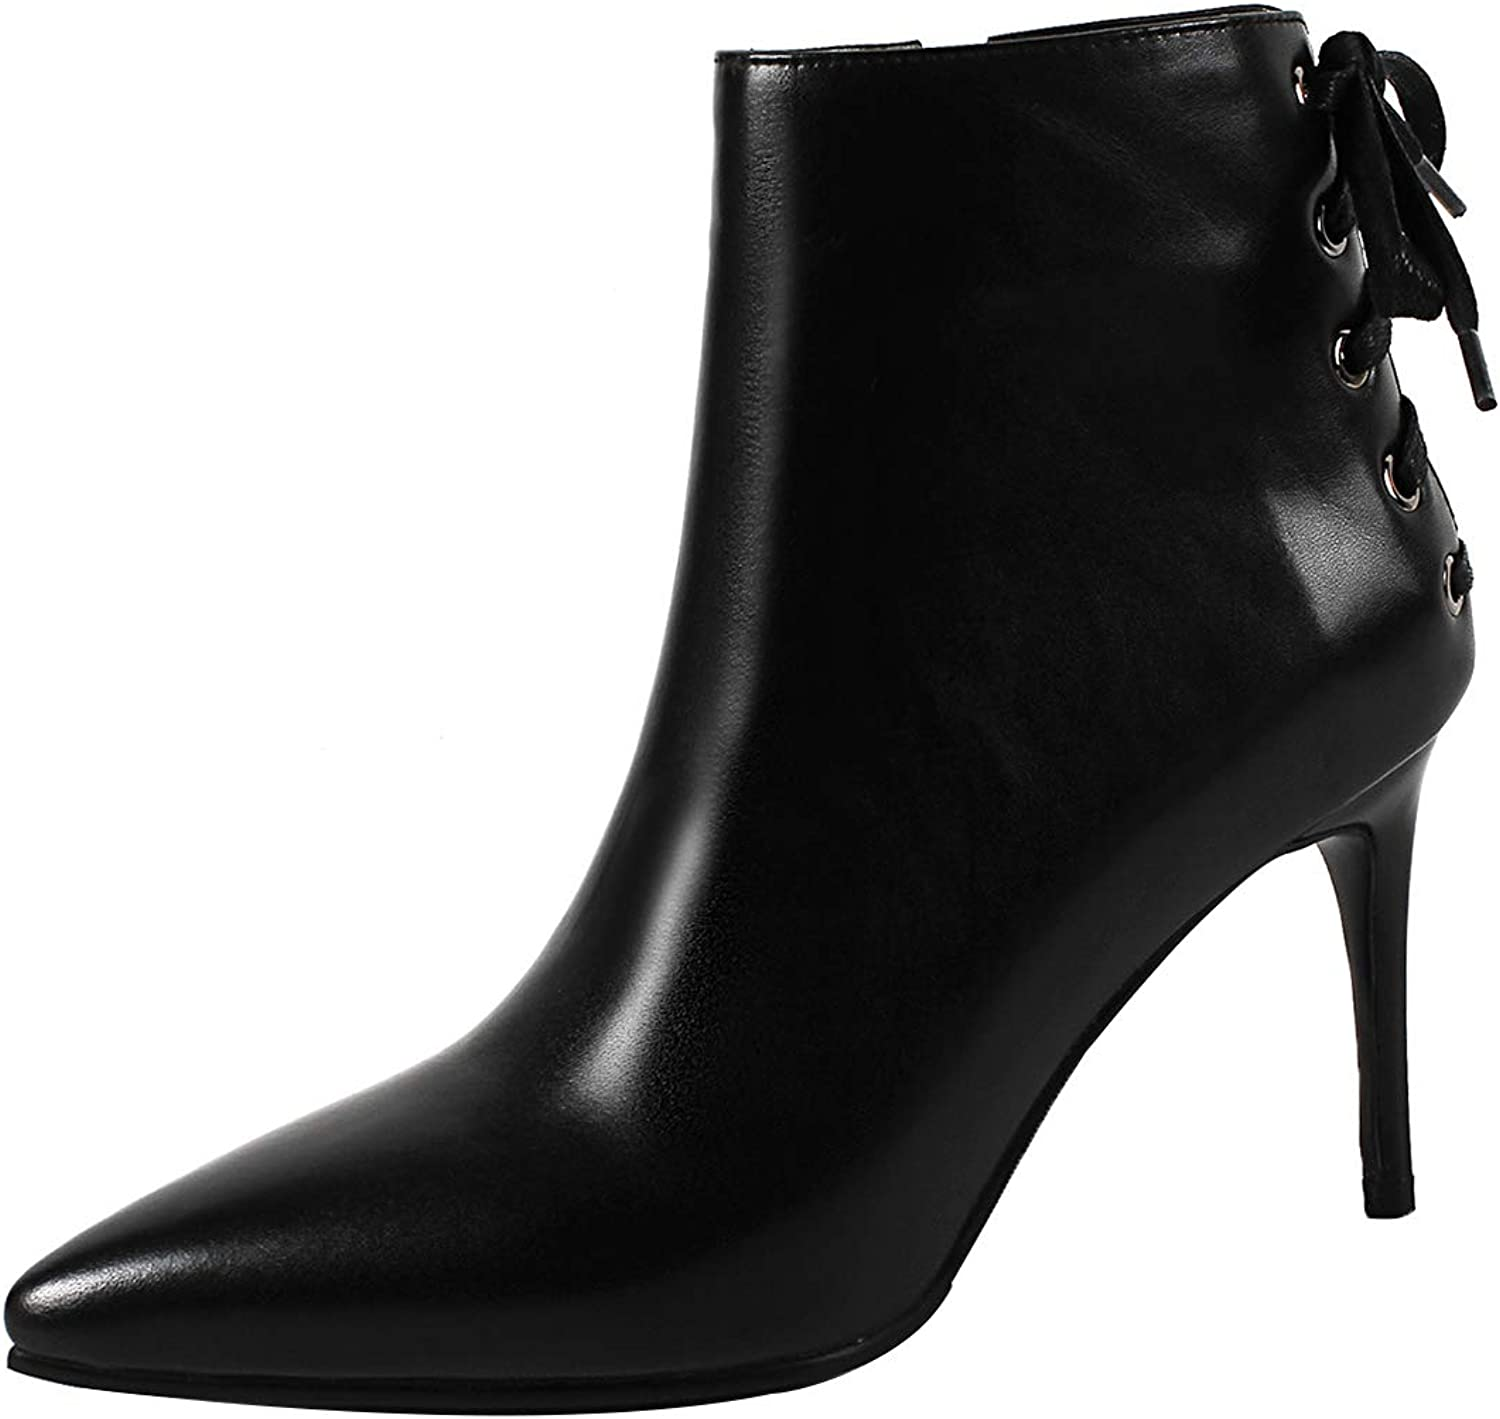 Eithy Women's Shaddr Stiletto Ankle-high Zipper Leather Boots